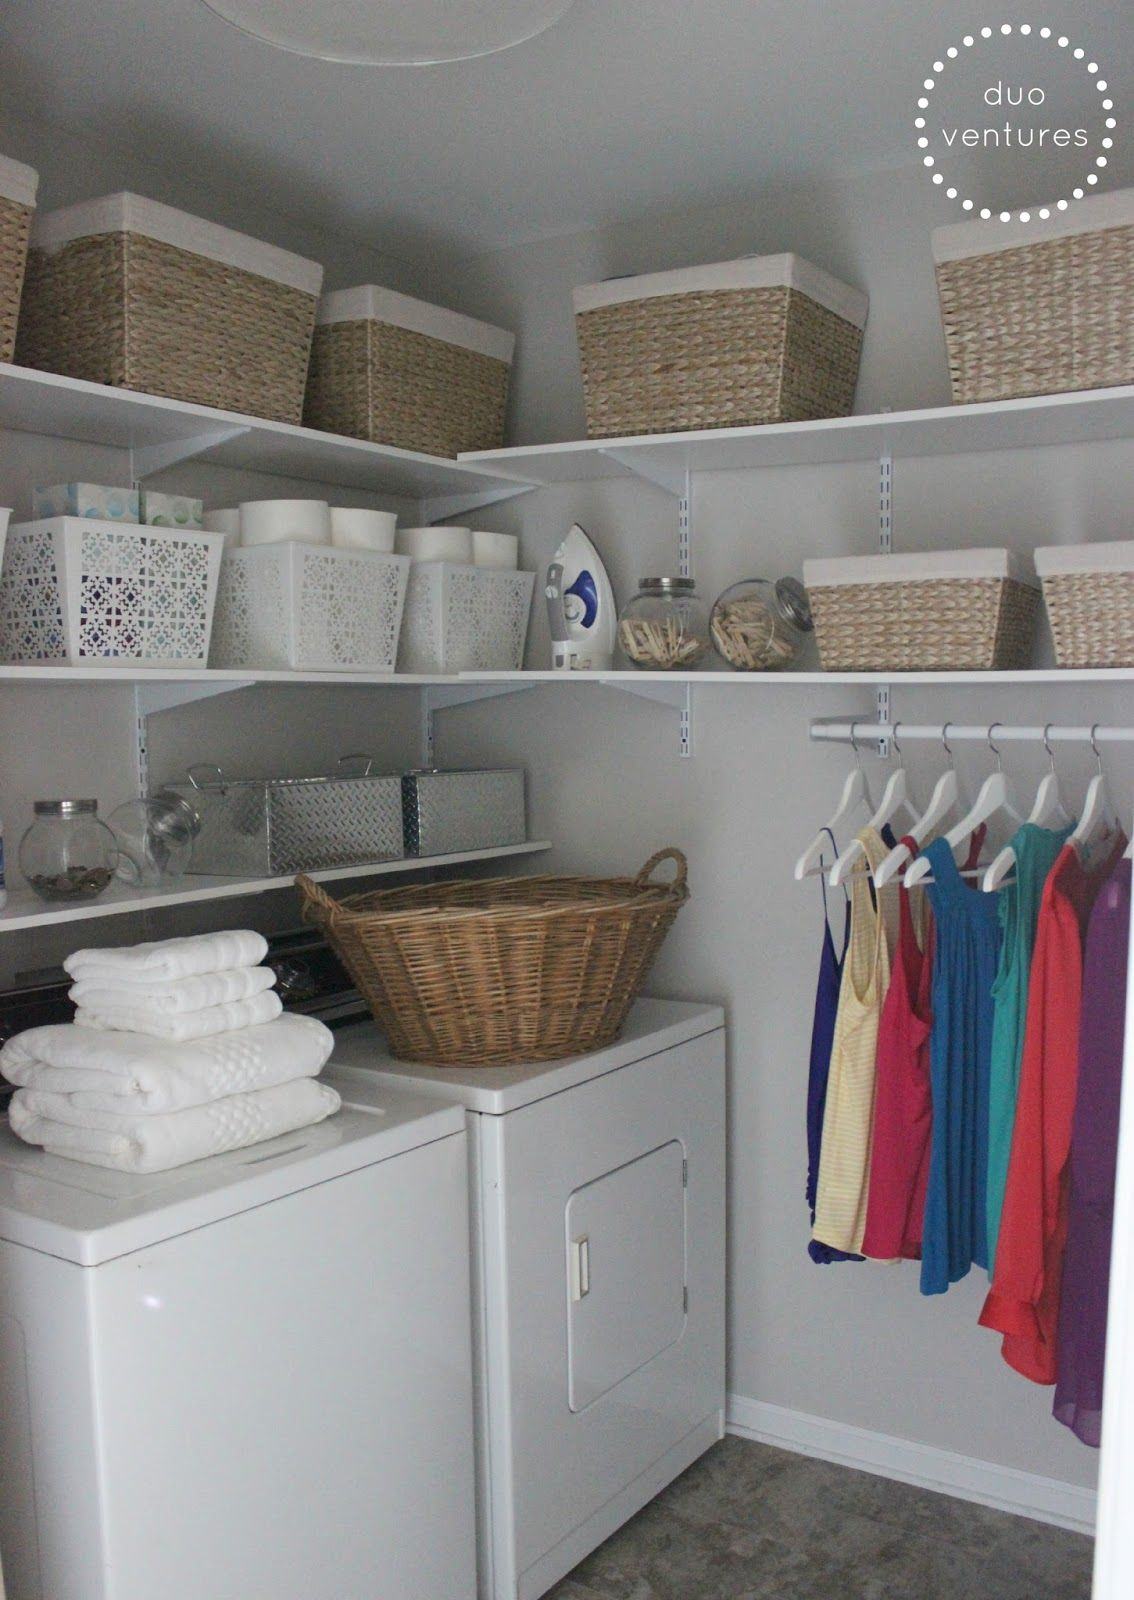 popular items laundry room decor. fun home things 10 laundry room ideas need to revamp our popular items decor